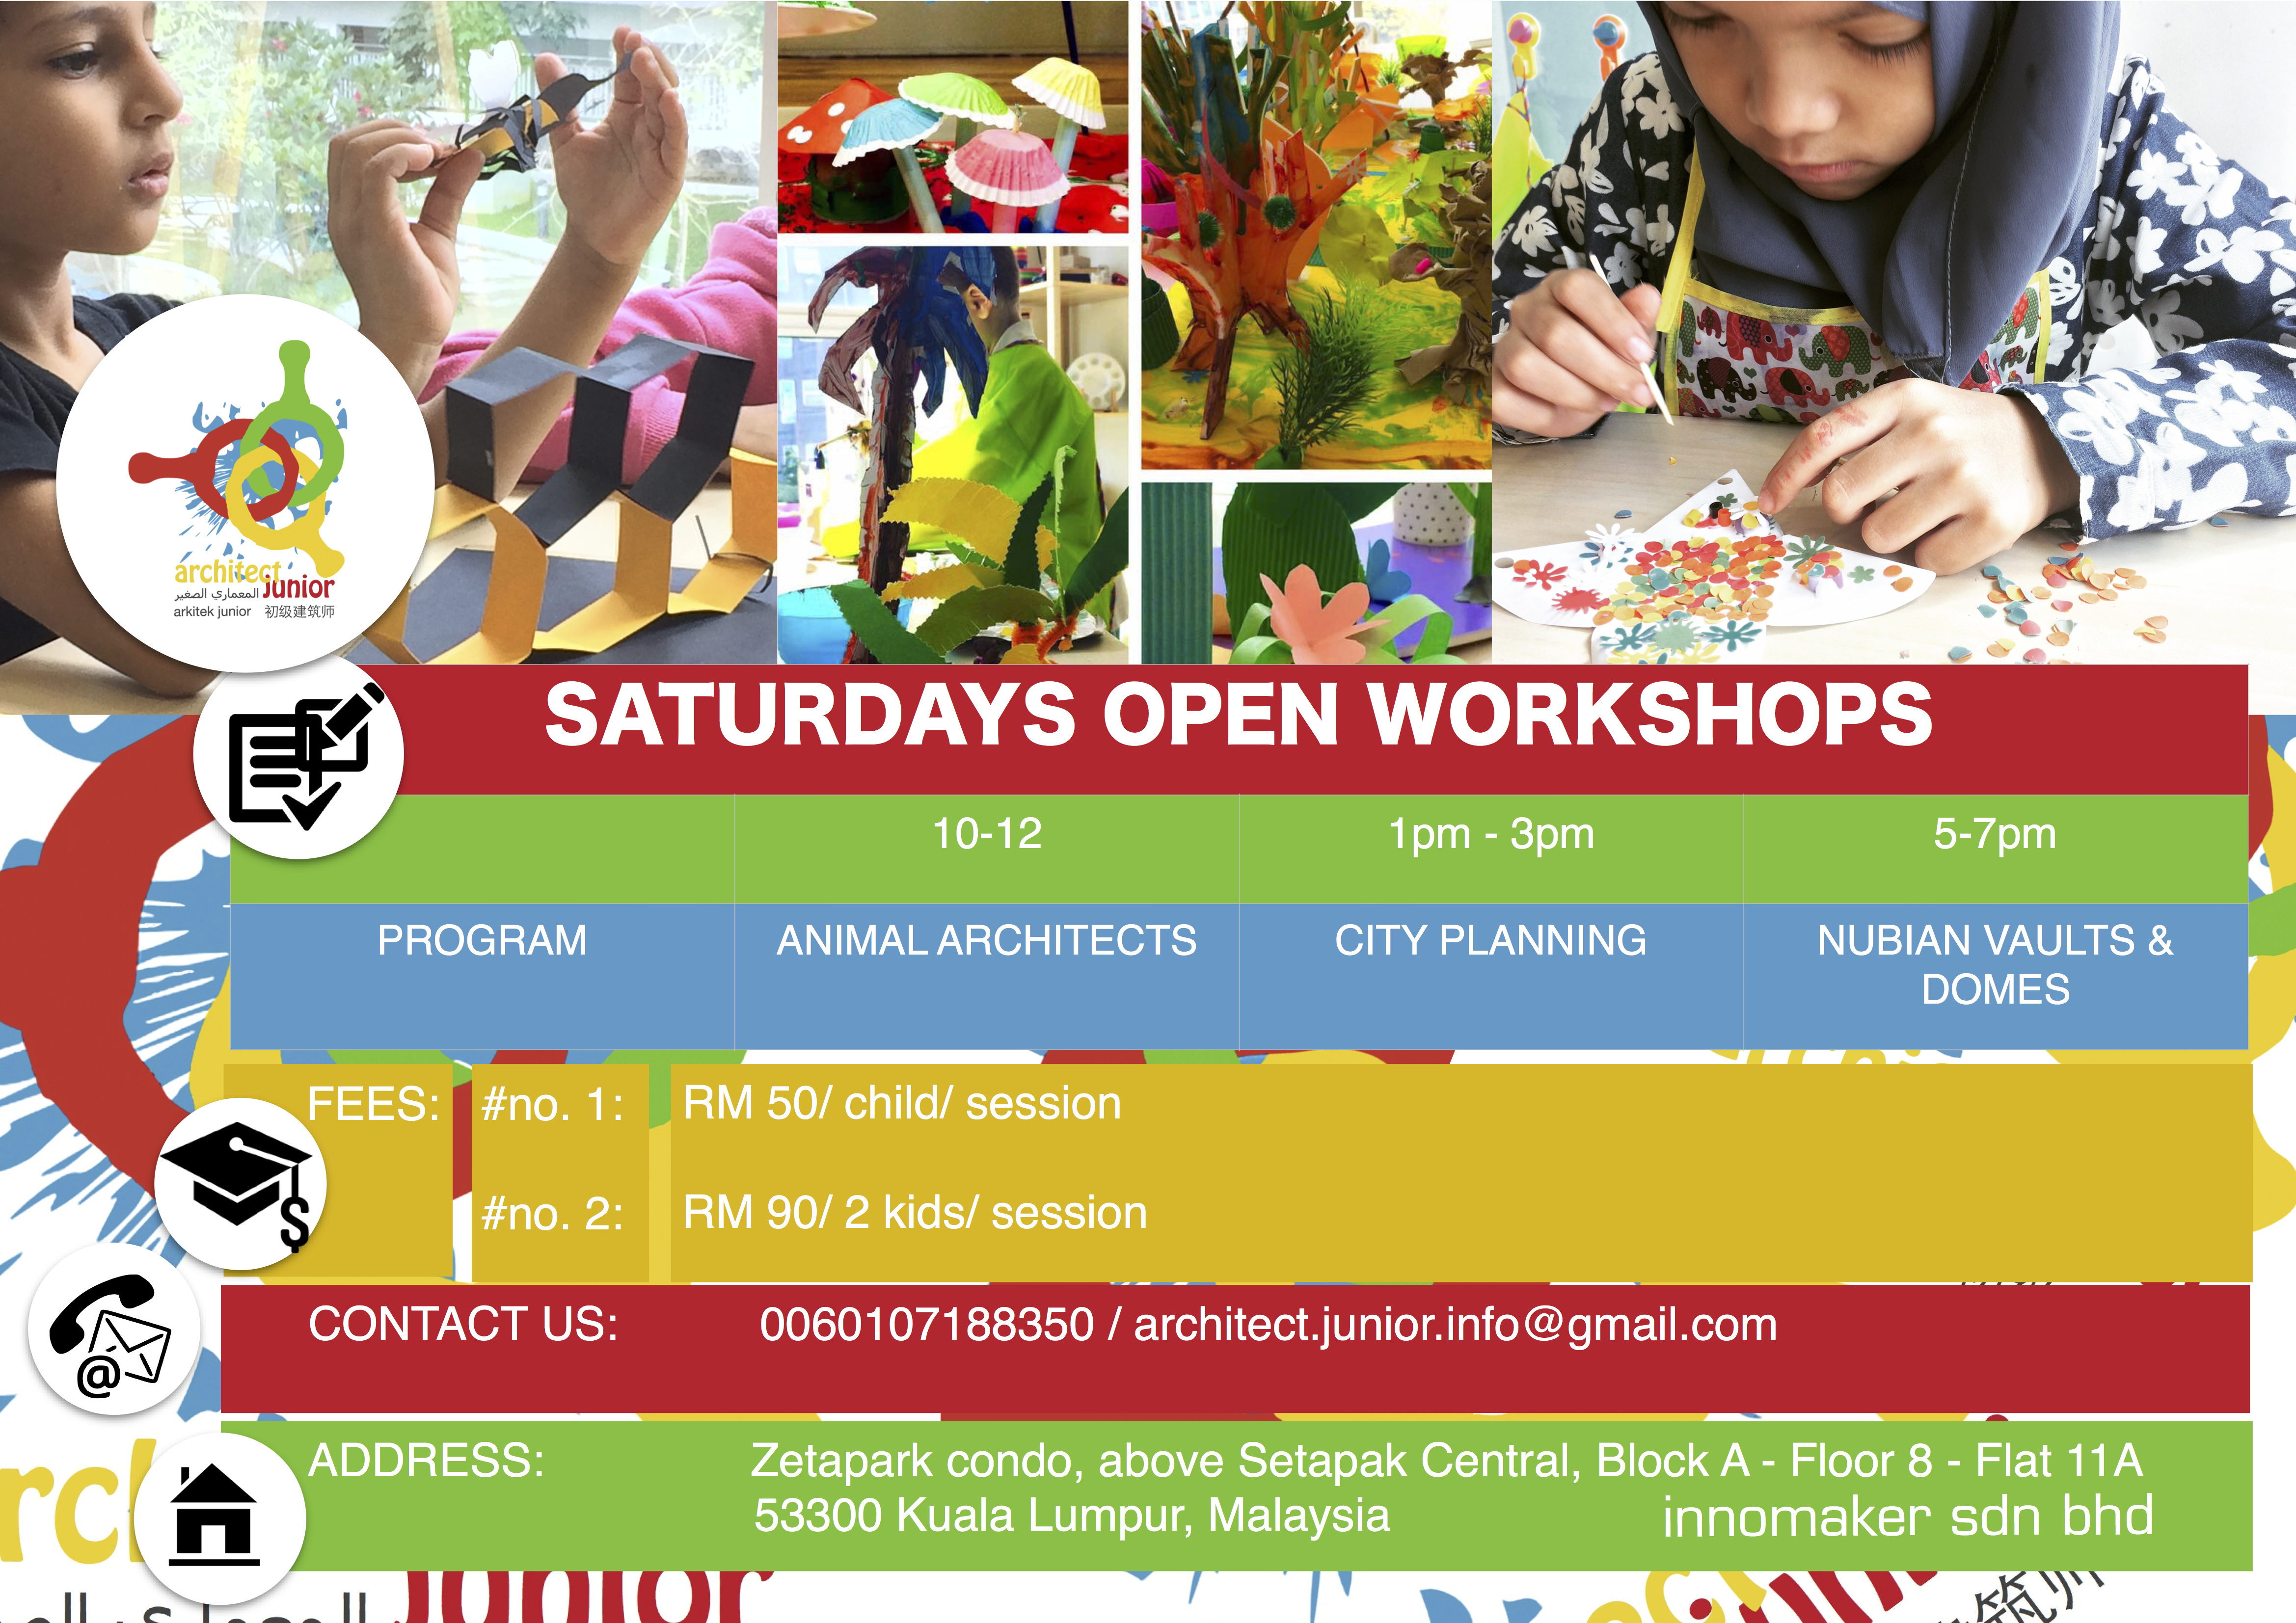 Saturday open workshops